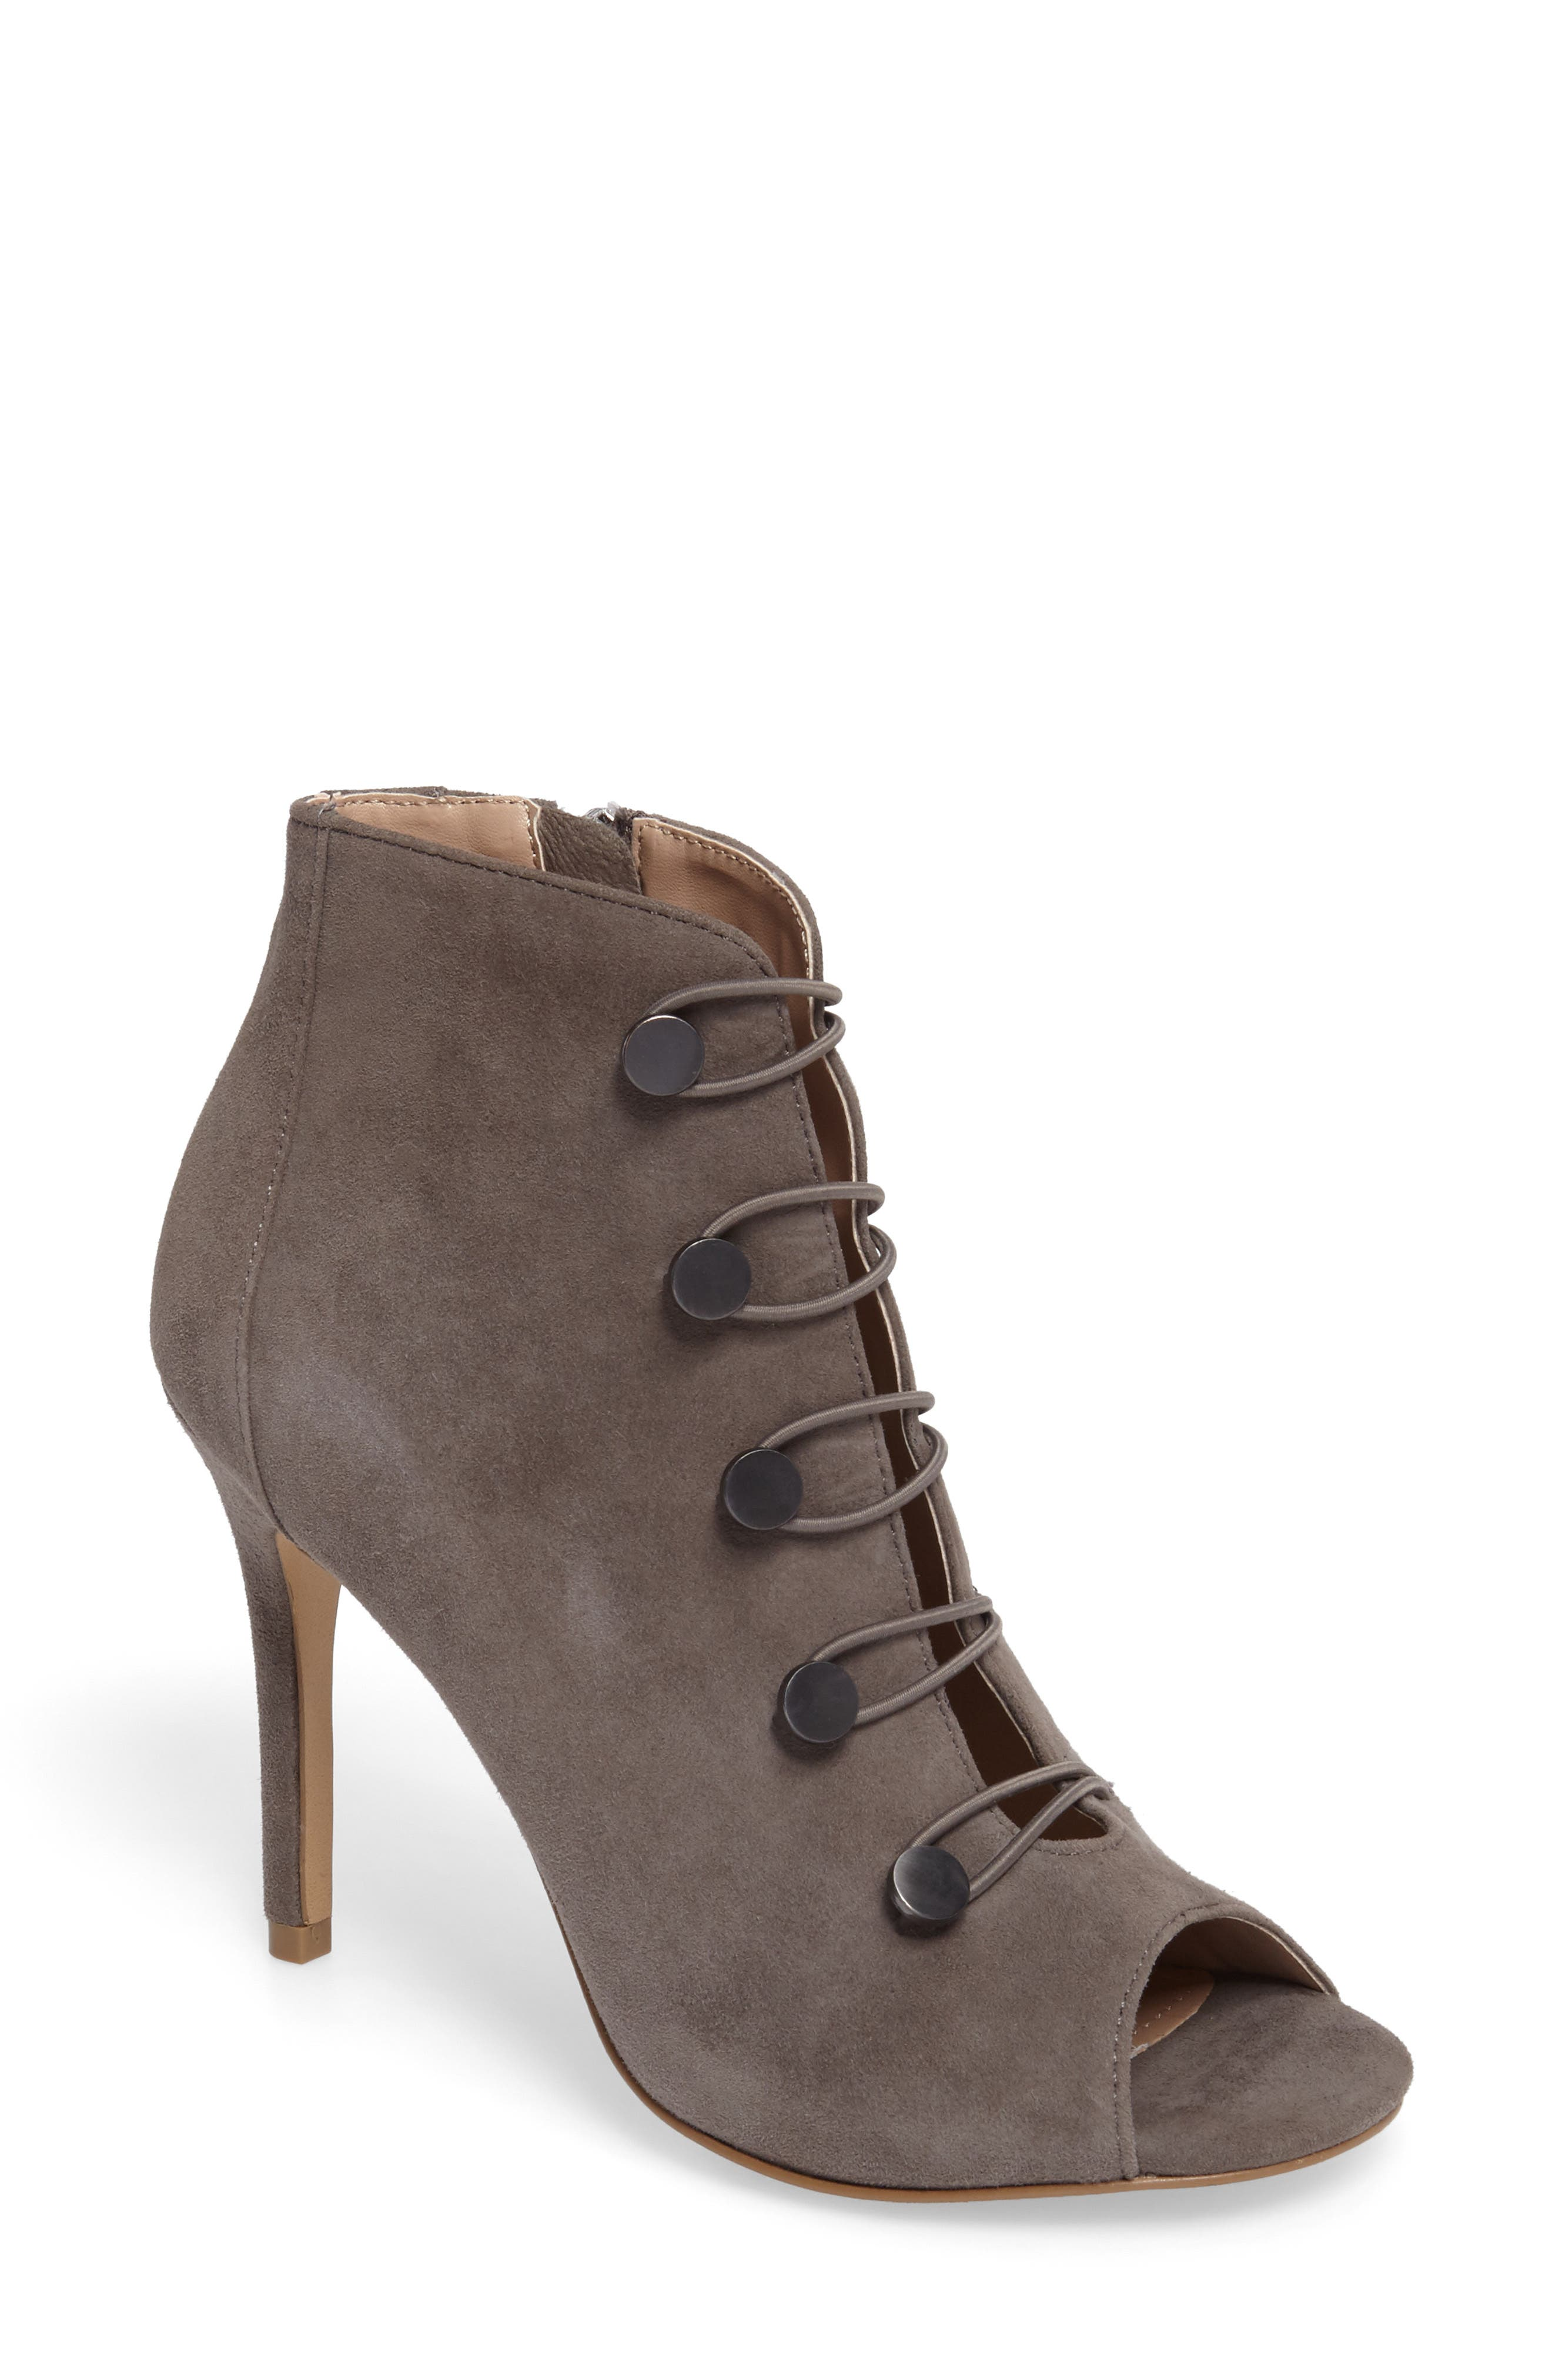 Main Image - Charles by Charles David Royalty Bootie (Women)